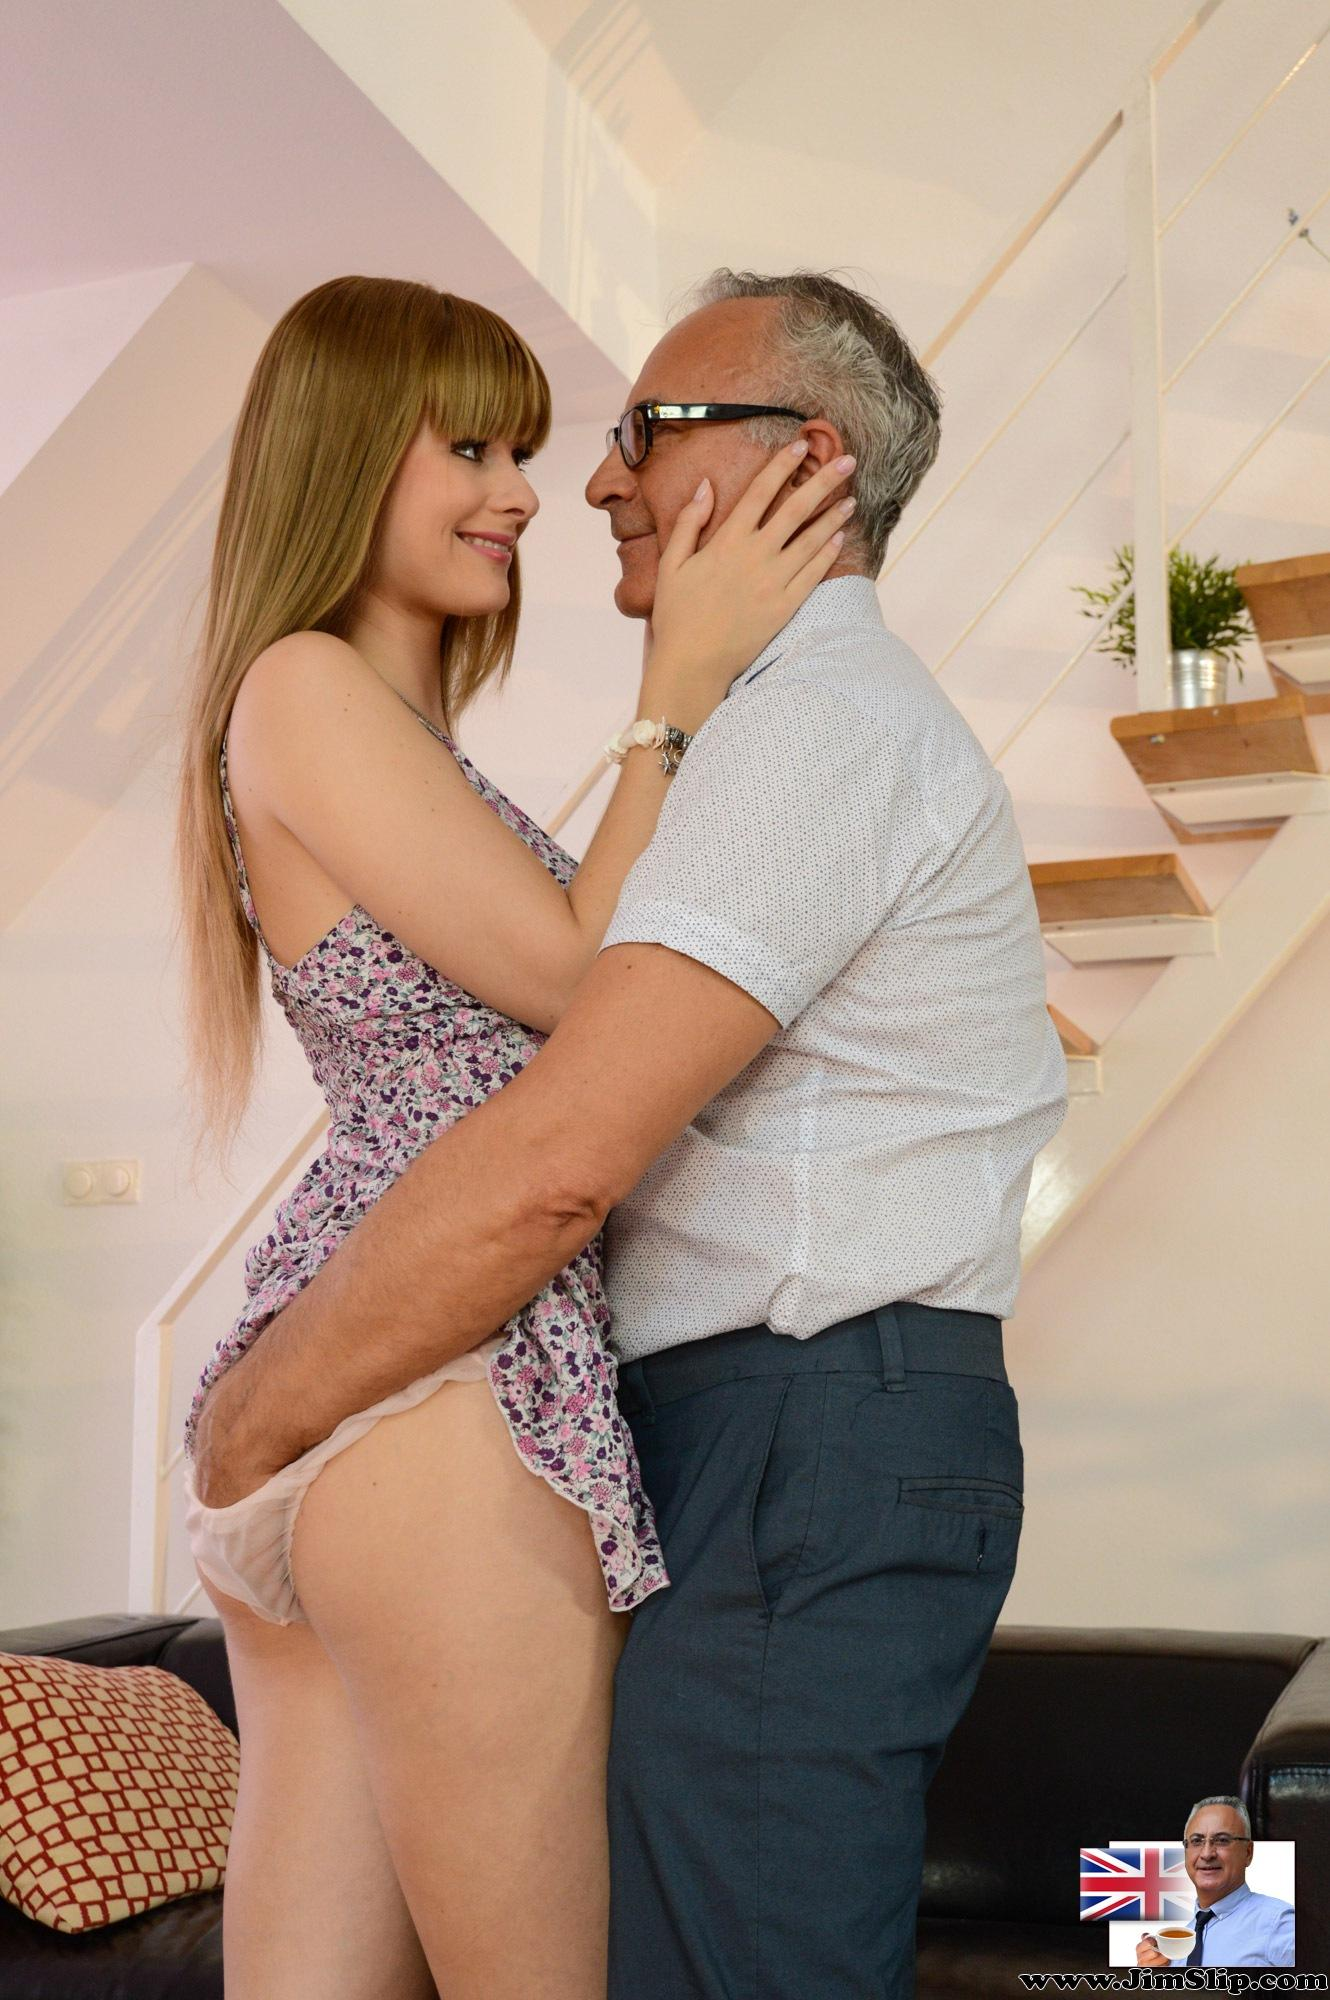 Old Man Porn Xvideos small and petite charlize takes on pervert old man jim slip